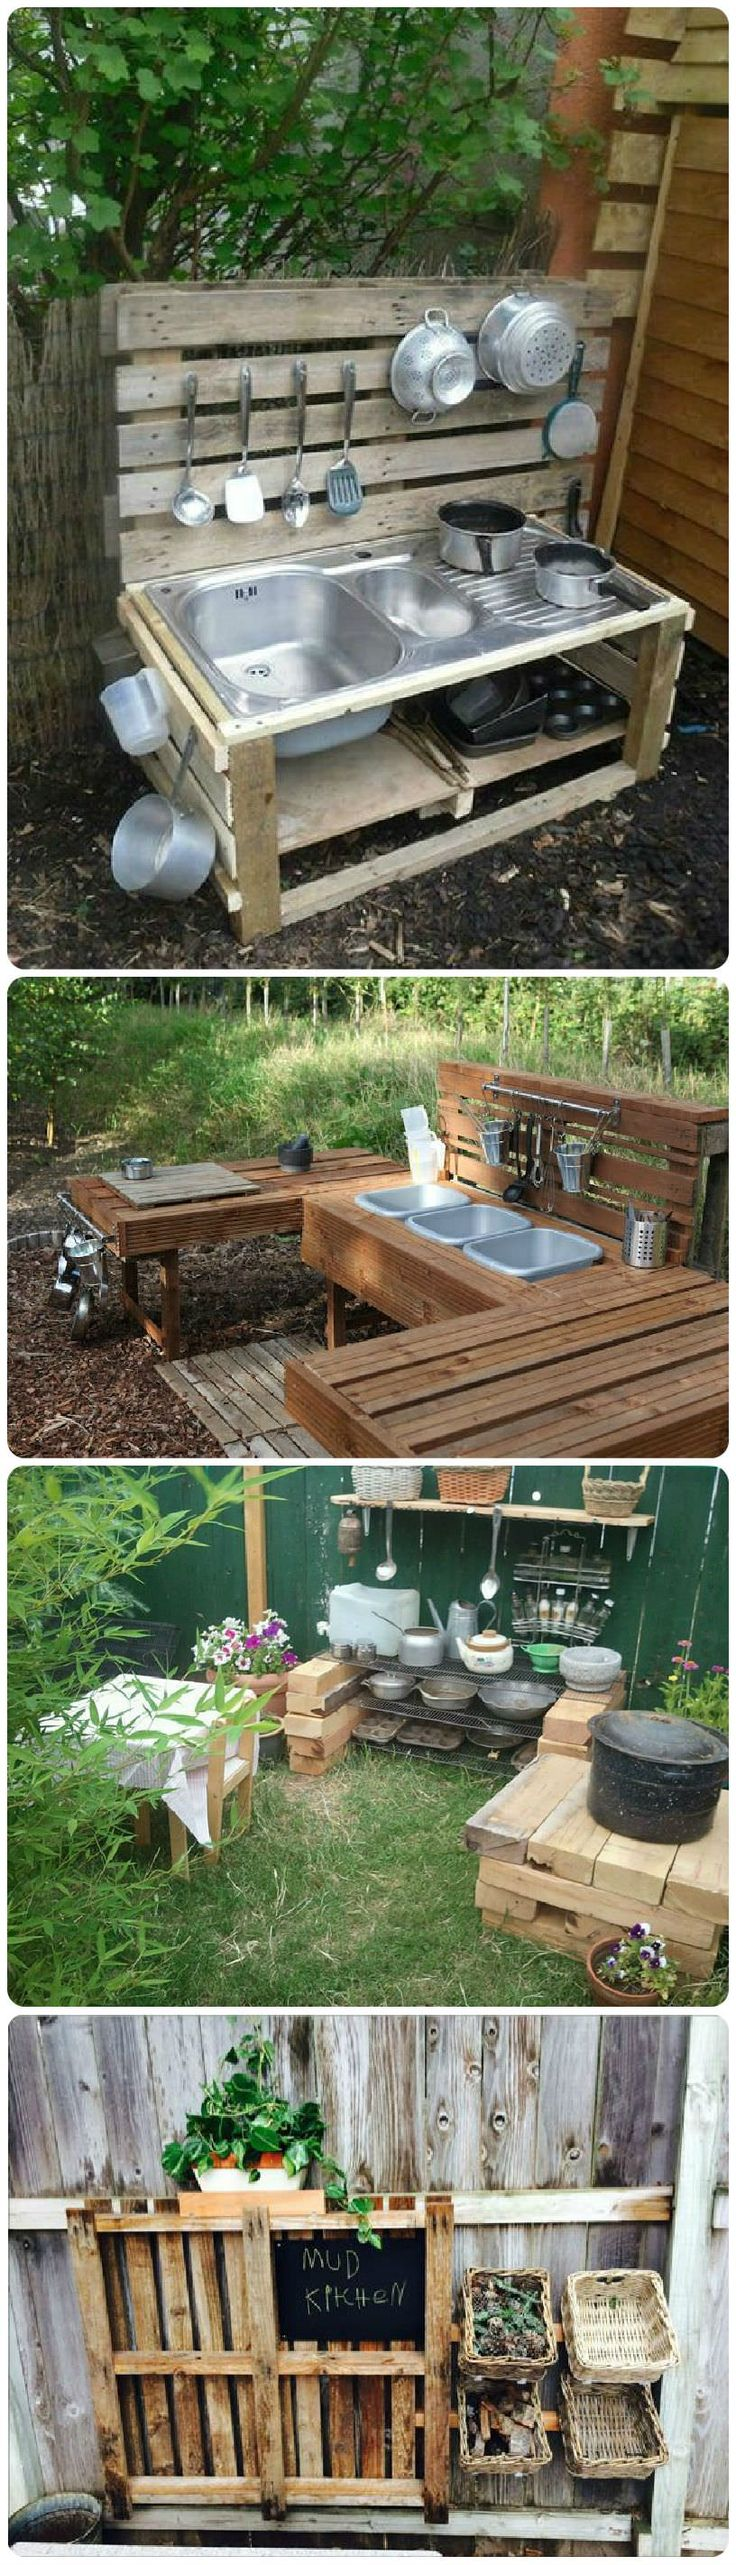 Mud kitchen (also known as an outdoor kitchen or mud pie kitchen) is one of the best resources in DIY projects for kids to play outside as kids playhouse.